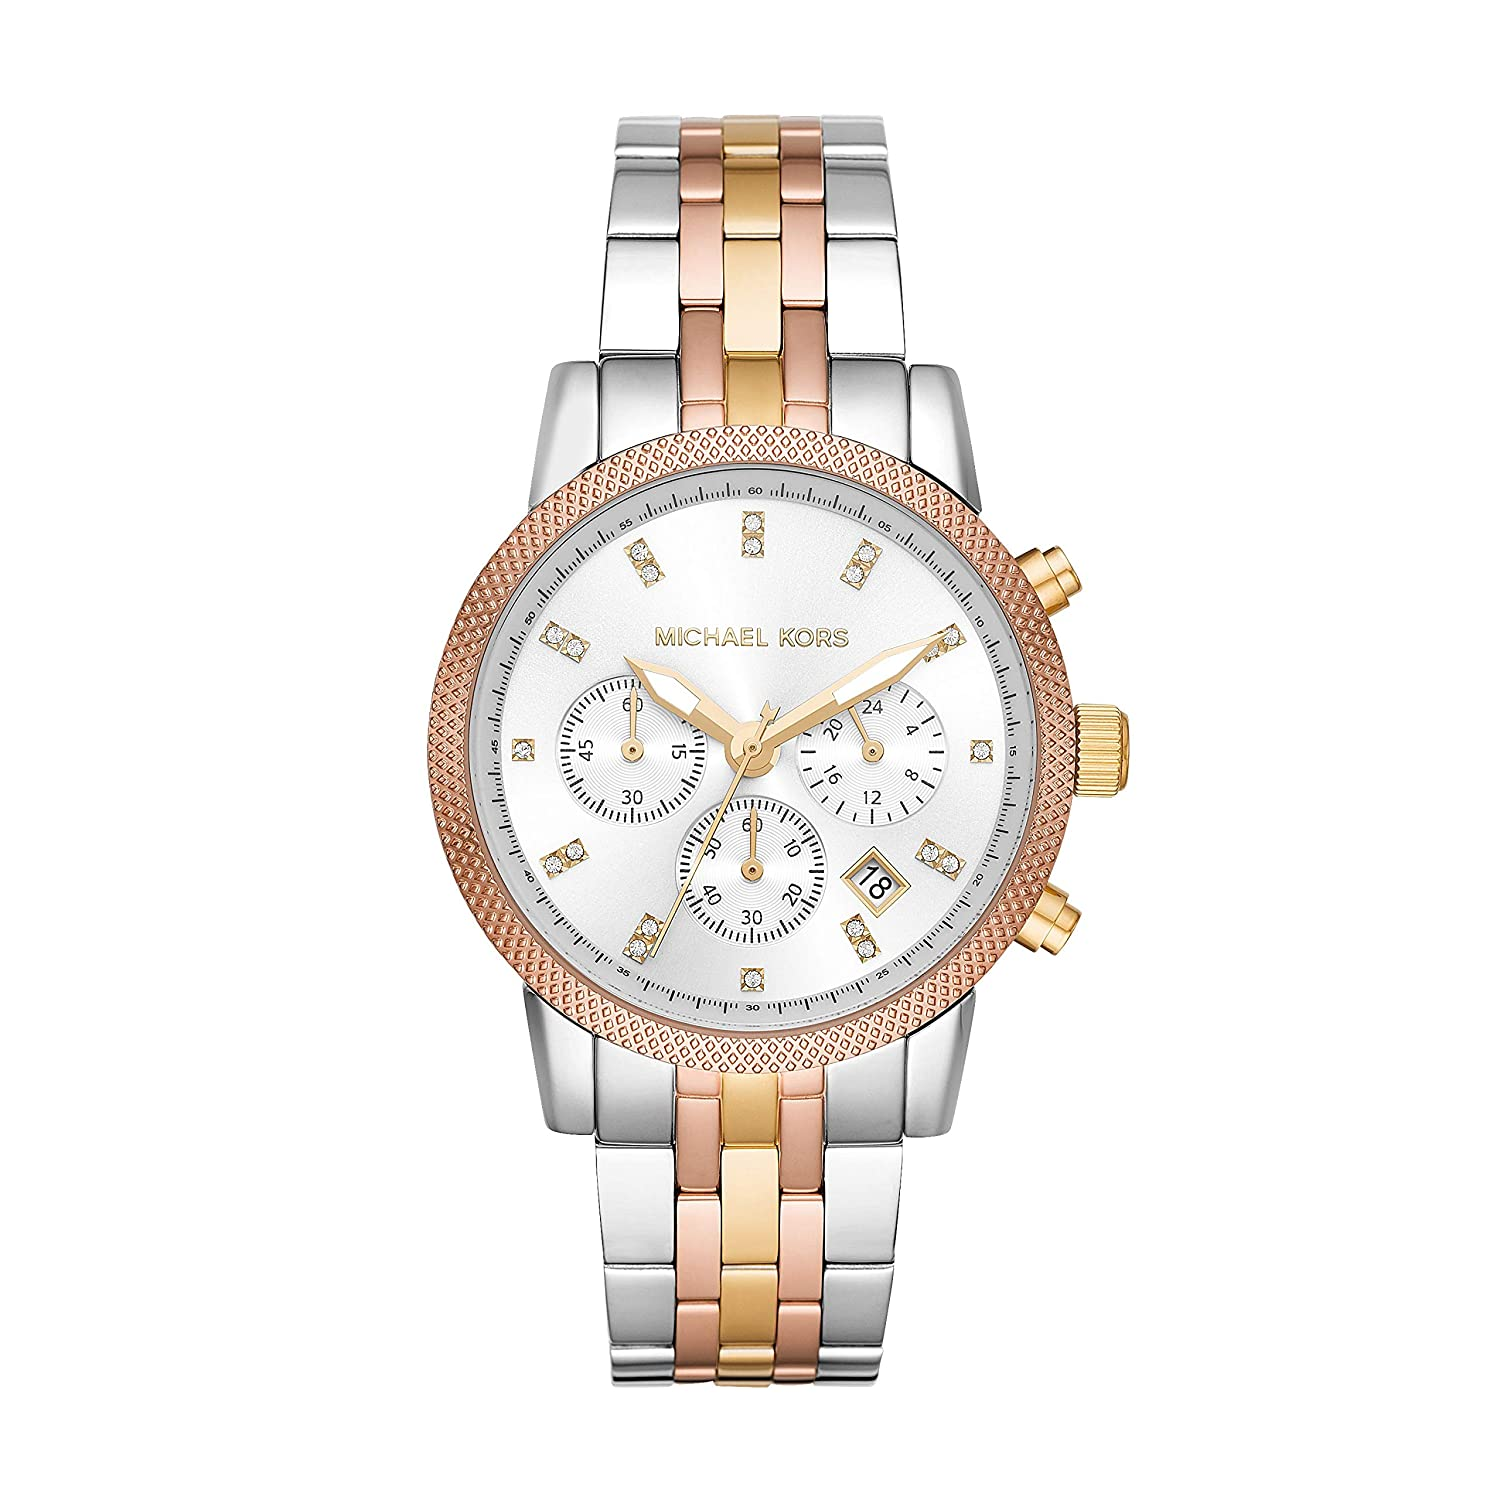 7c8f390d54e0 Amazon.com  Michael Kors MK6344 Ritz Tricolor Stainless Steel Chronograph  Women s Watch  Watches